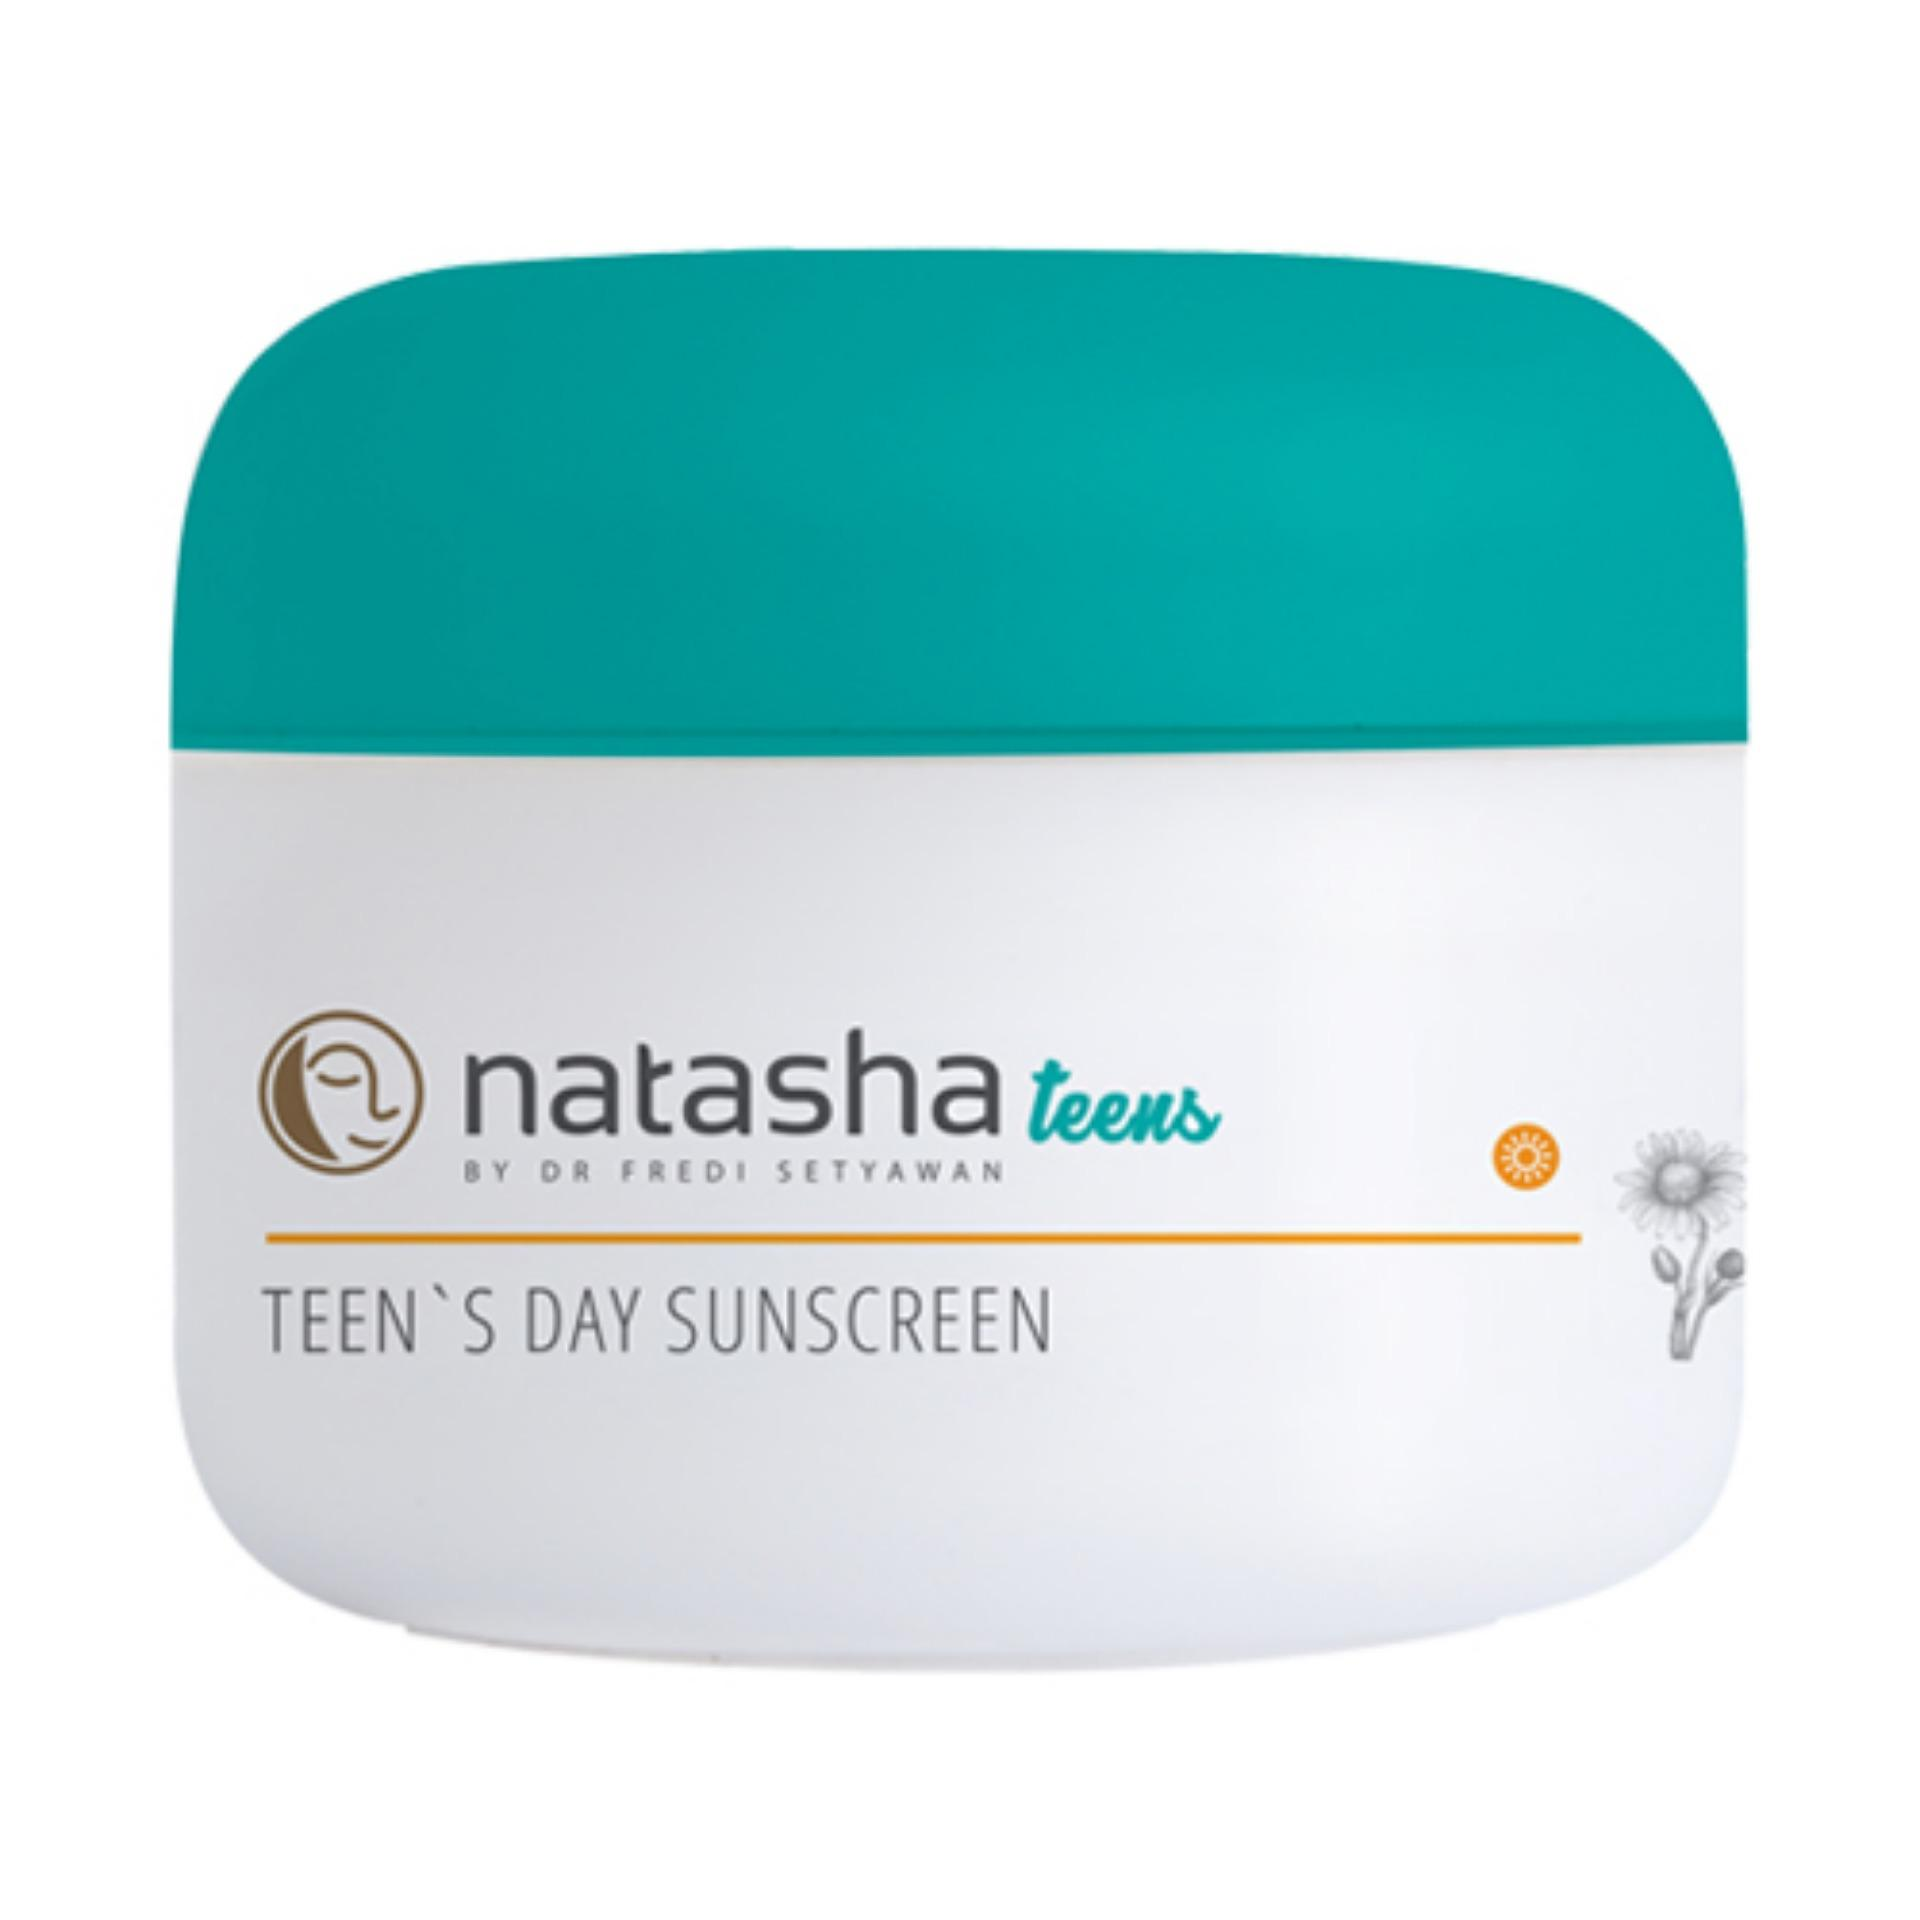 Natasha by dr Fredi Setyawan Teen's Day Sunscreen